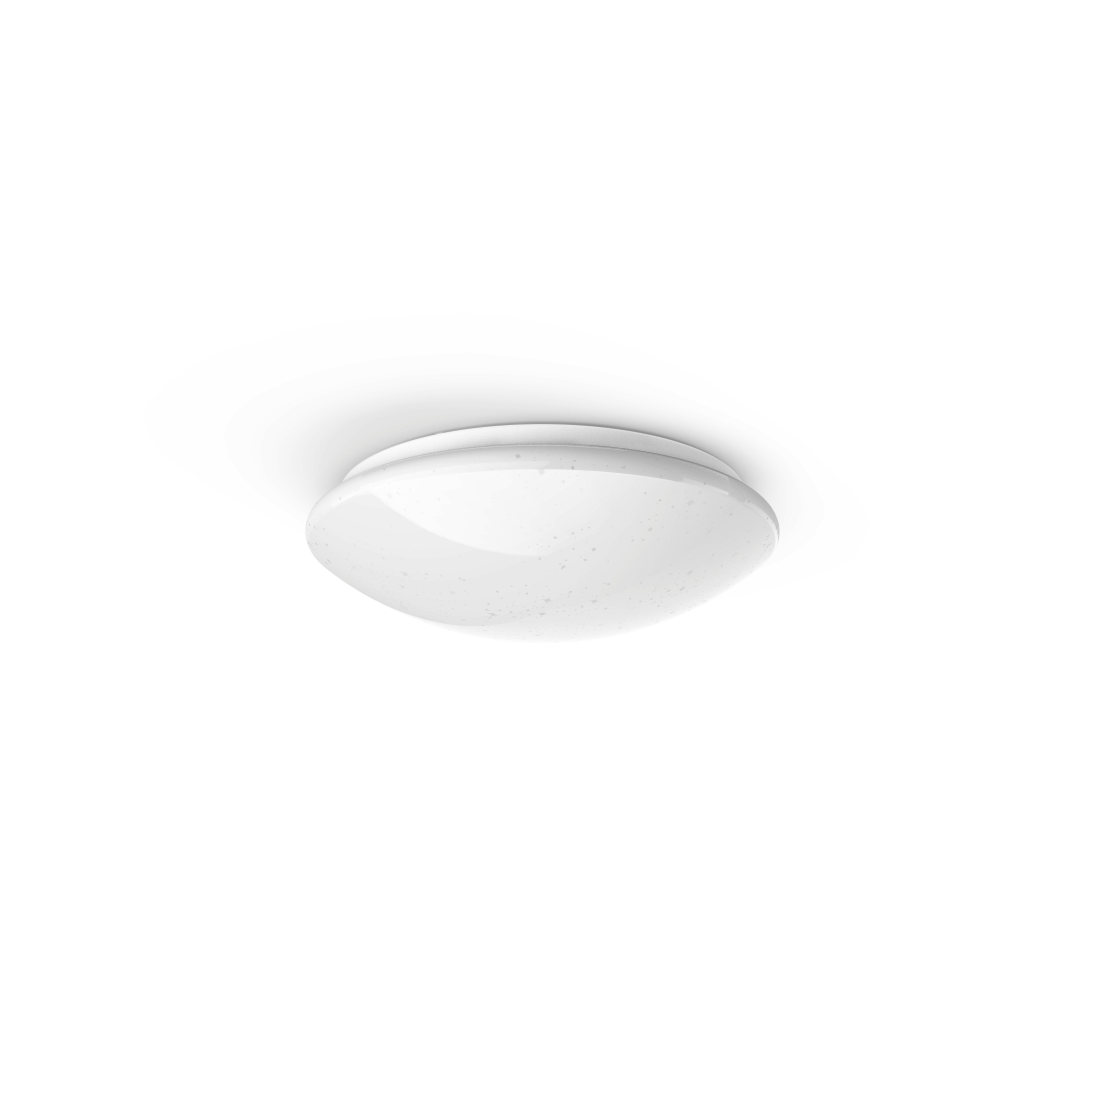 abx High-Res Image - Hama, WiFi Ceiling Light, Glitter Effect, Round, Diameter 30 cm